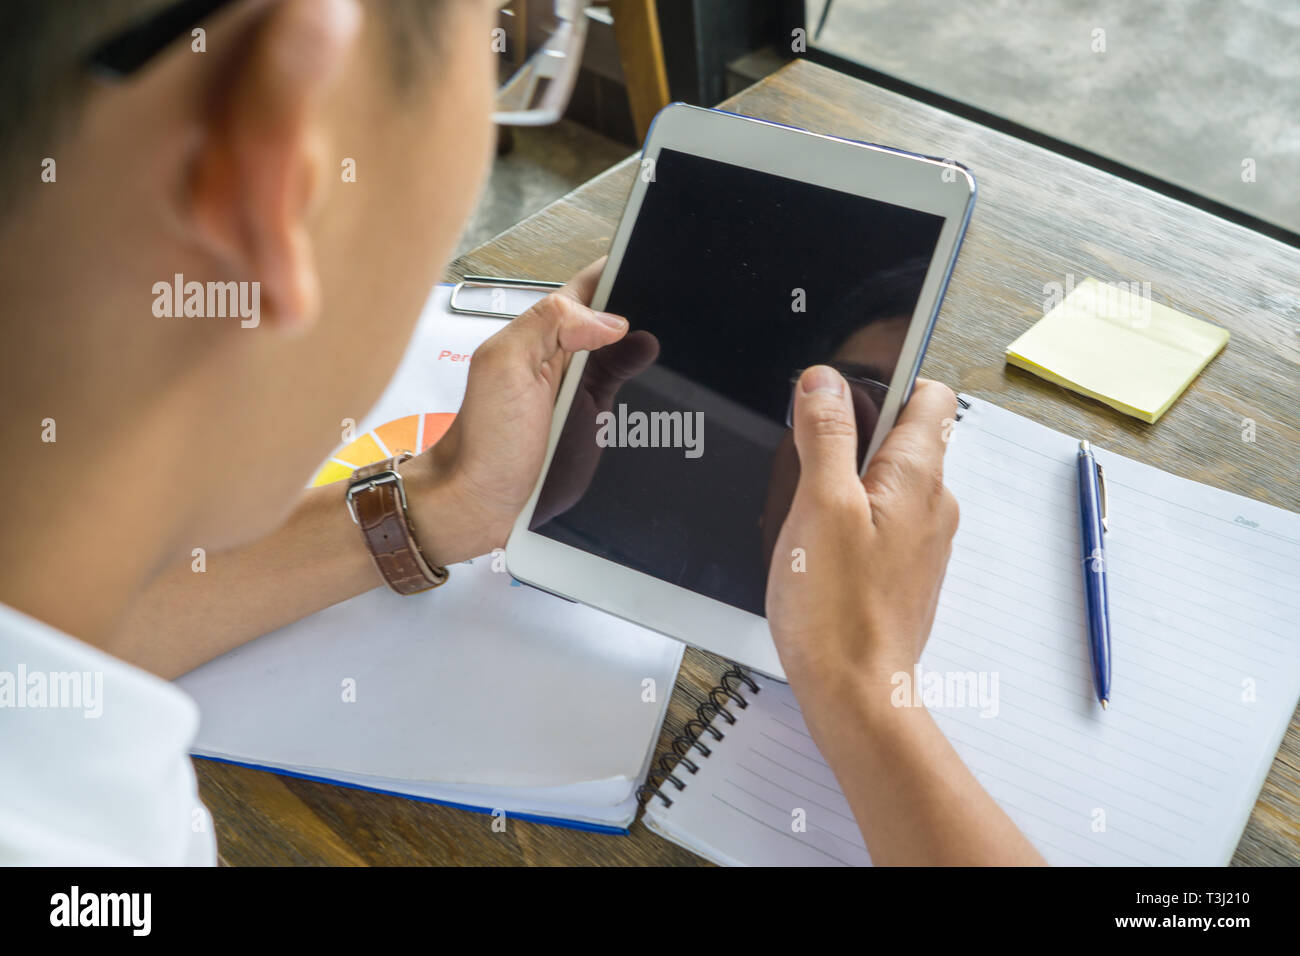 Close-up of human hand tapping on tablet surface - Stock Image